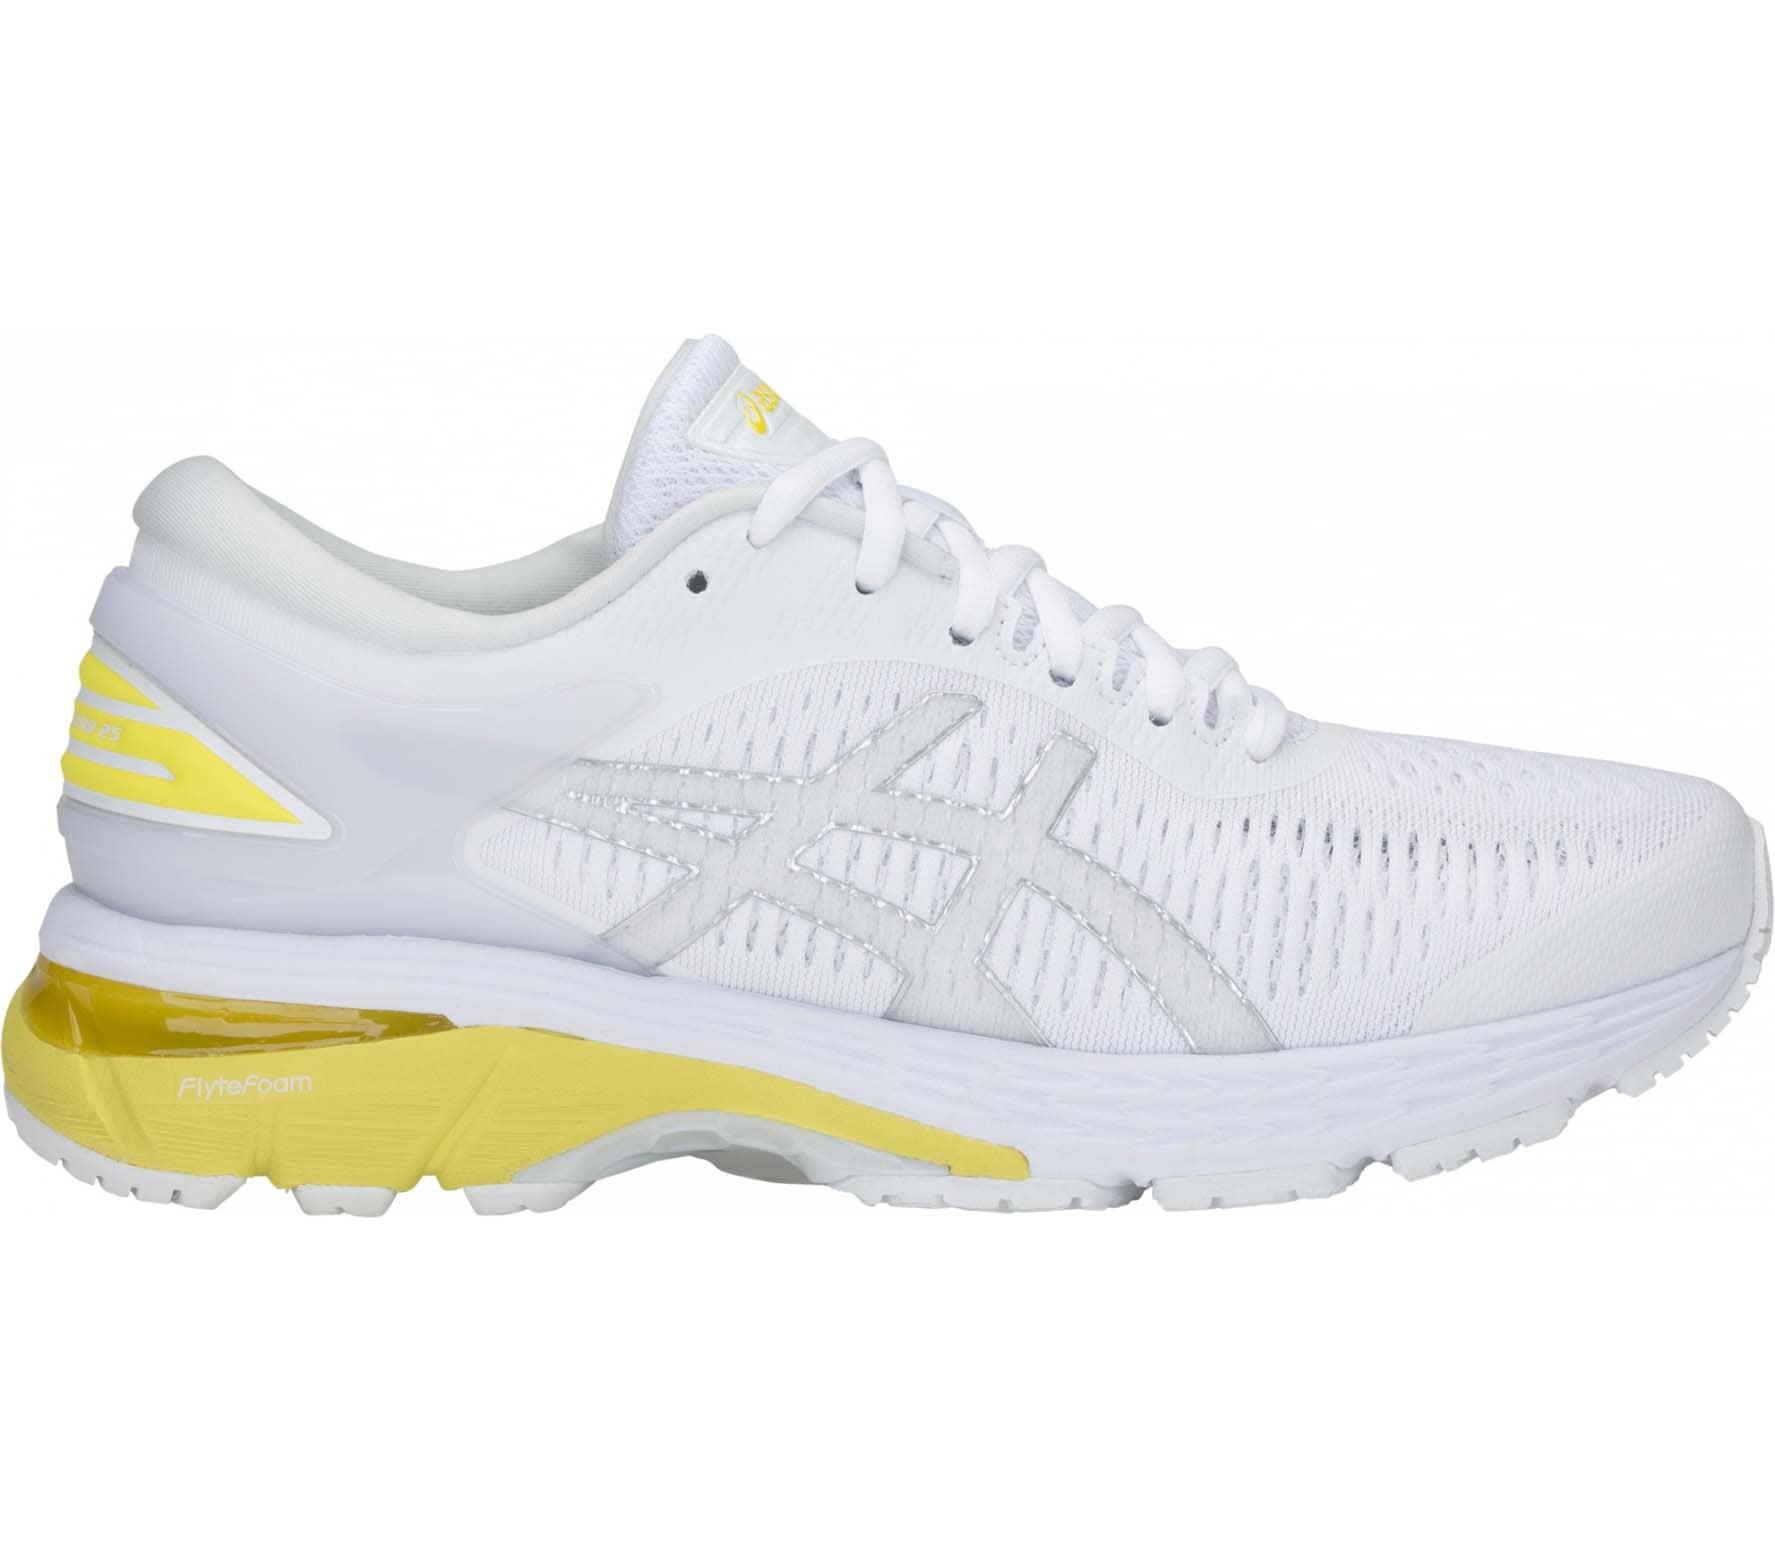 check out 20c7c 2a415 ASICS - Gel-Kayano 25 Dam löparskor (vit gul)